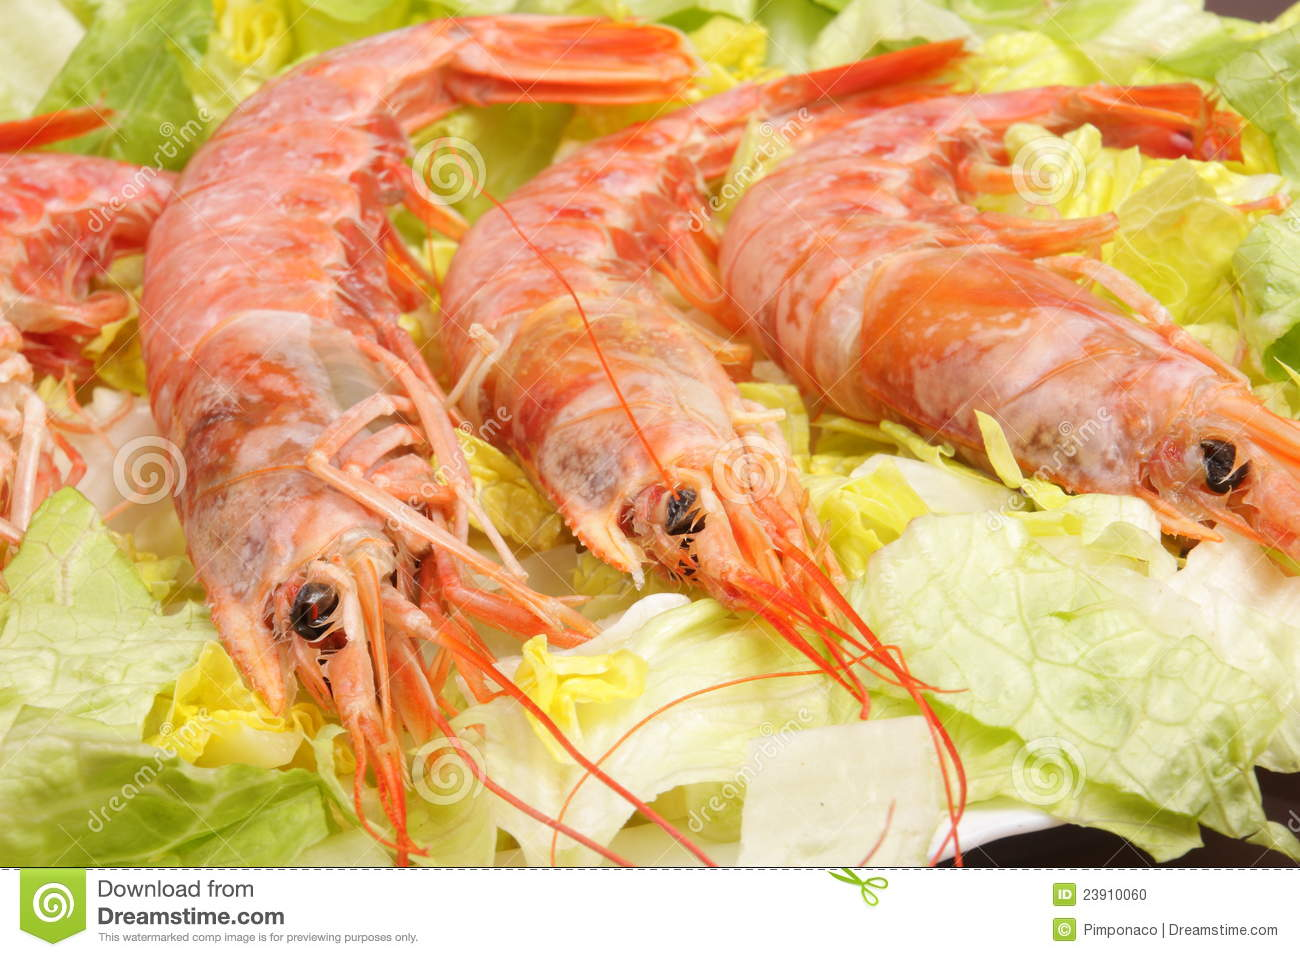 how to cook pink shrimp